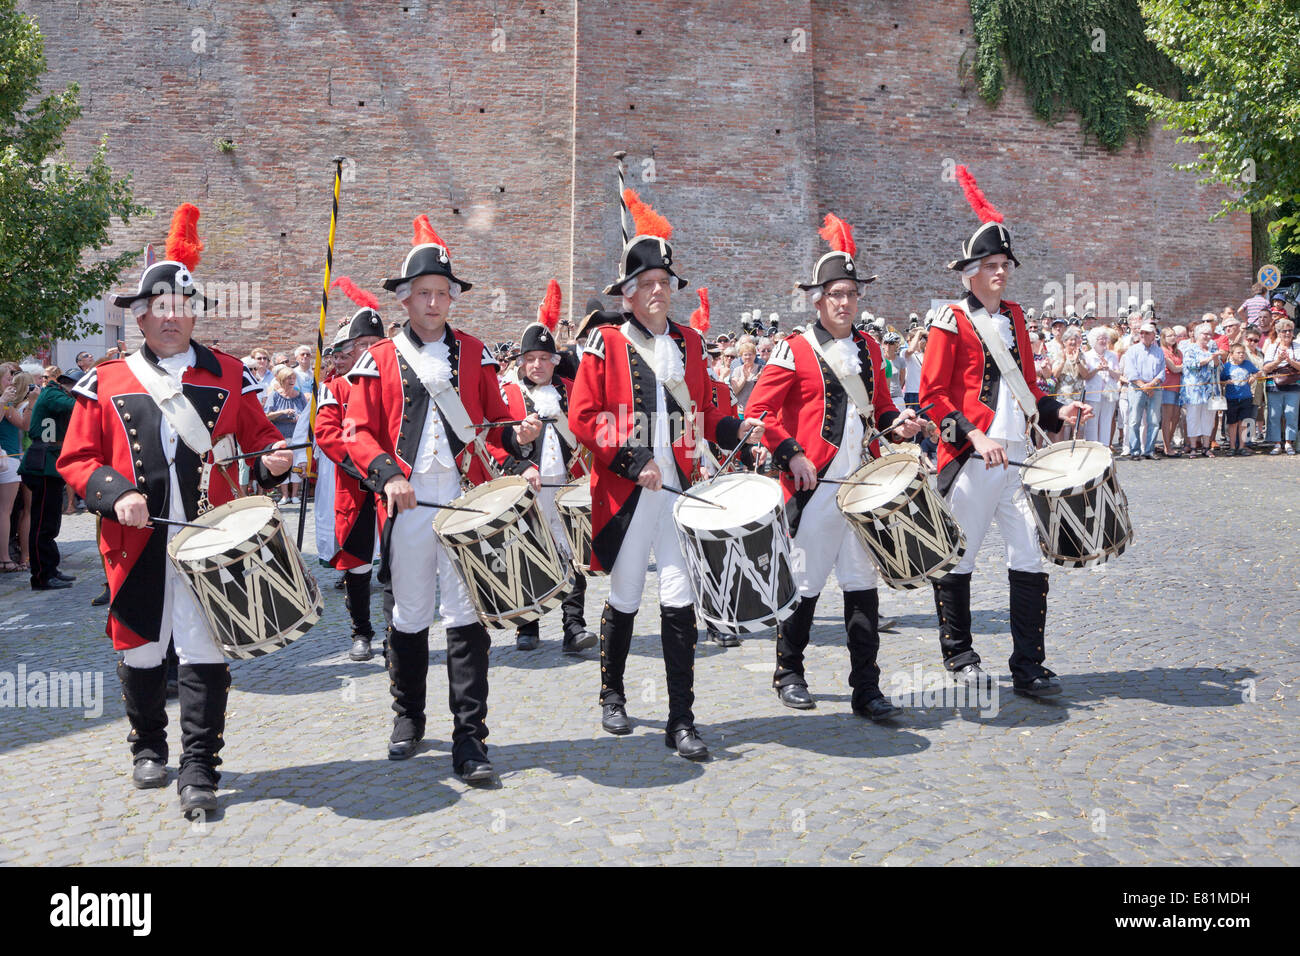 Marching band wearing the uniforms of the Ulm town soldiers, Fischerstechen or water jousting festival, Ulm, Baden - Stock Image